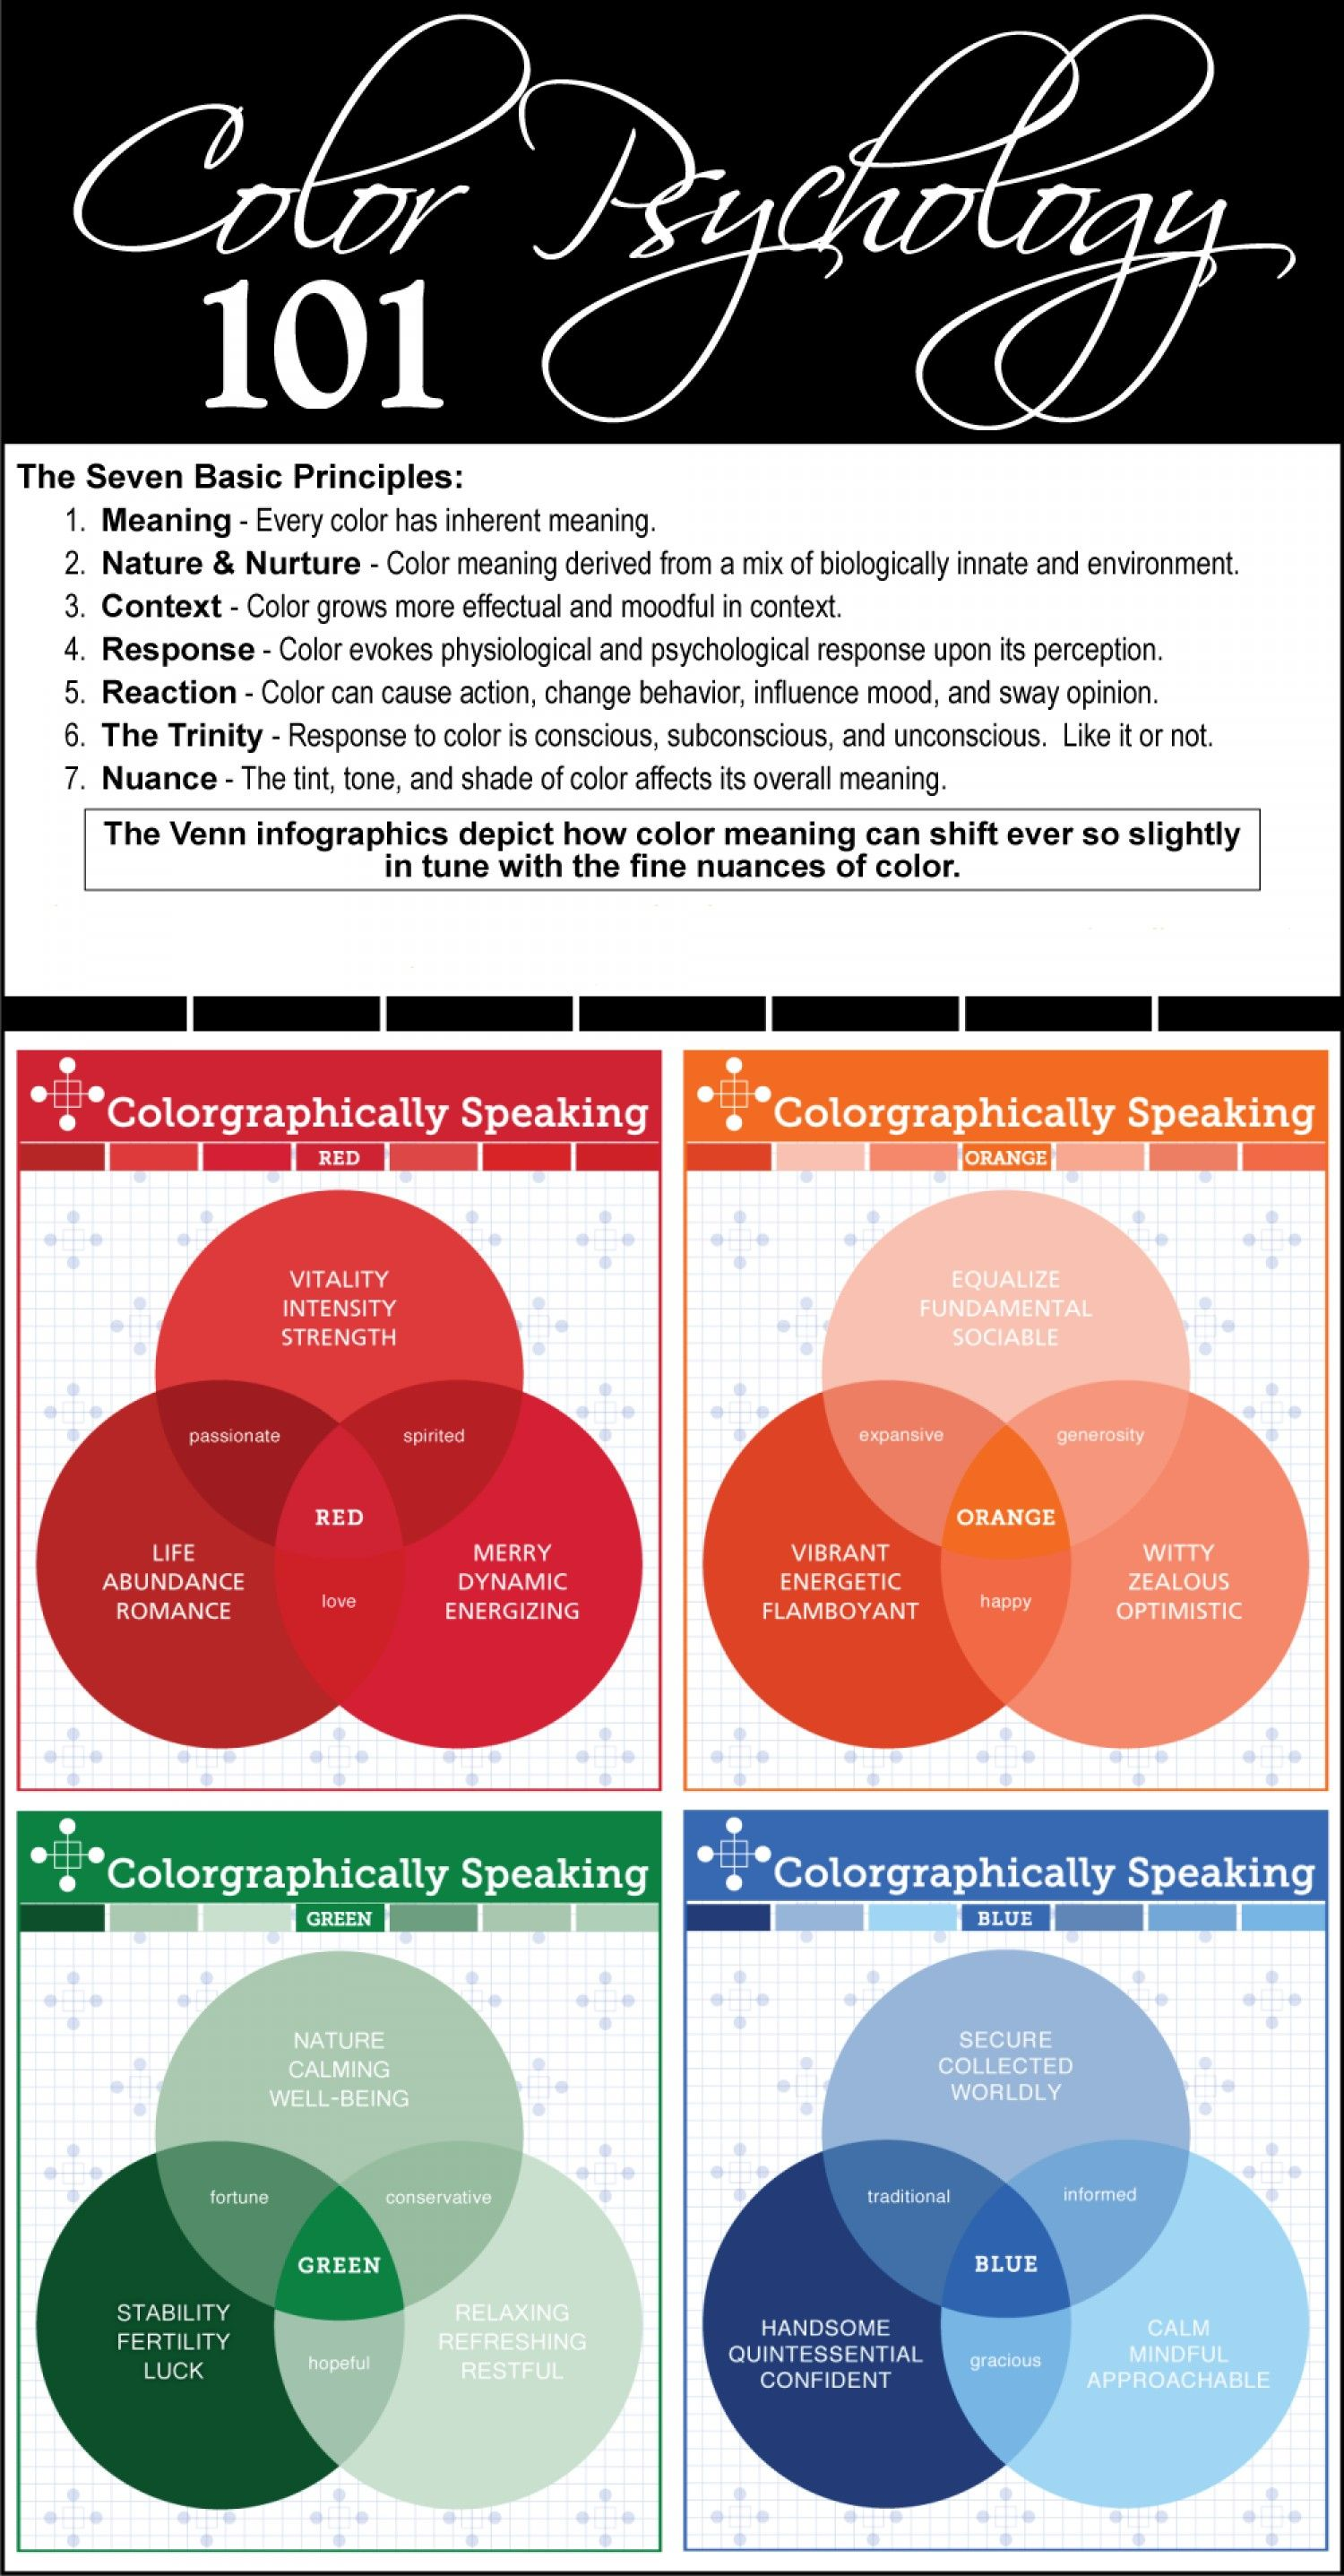 color psychology and meaning infographic color